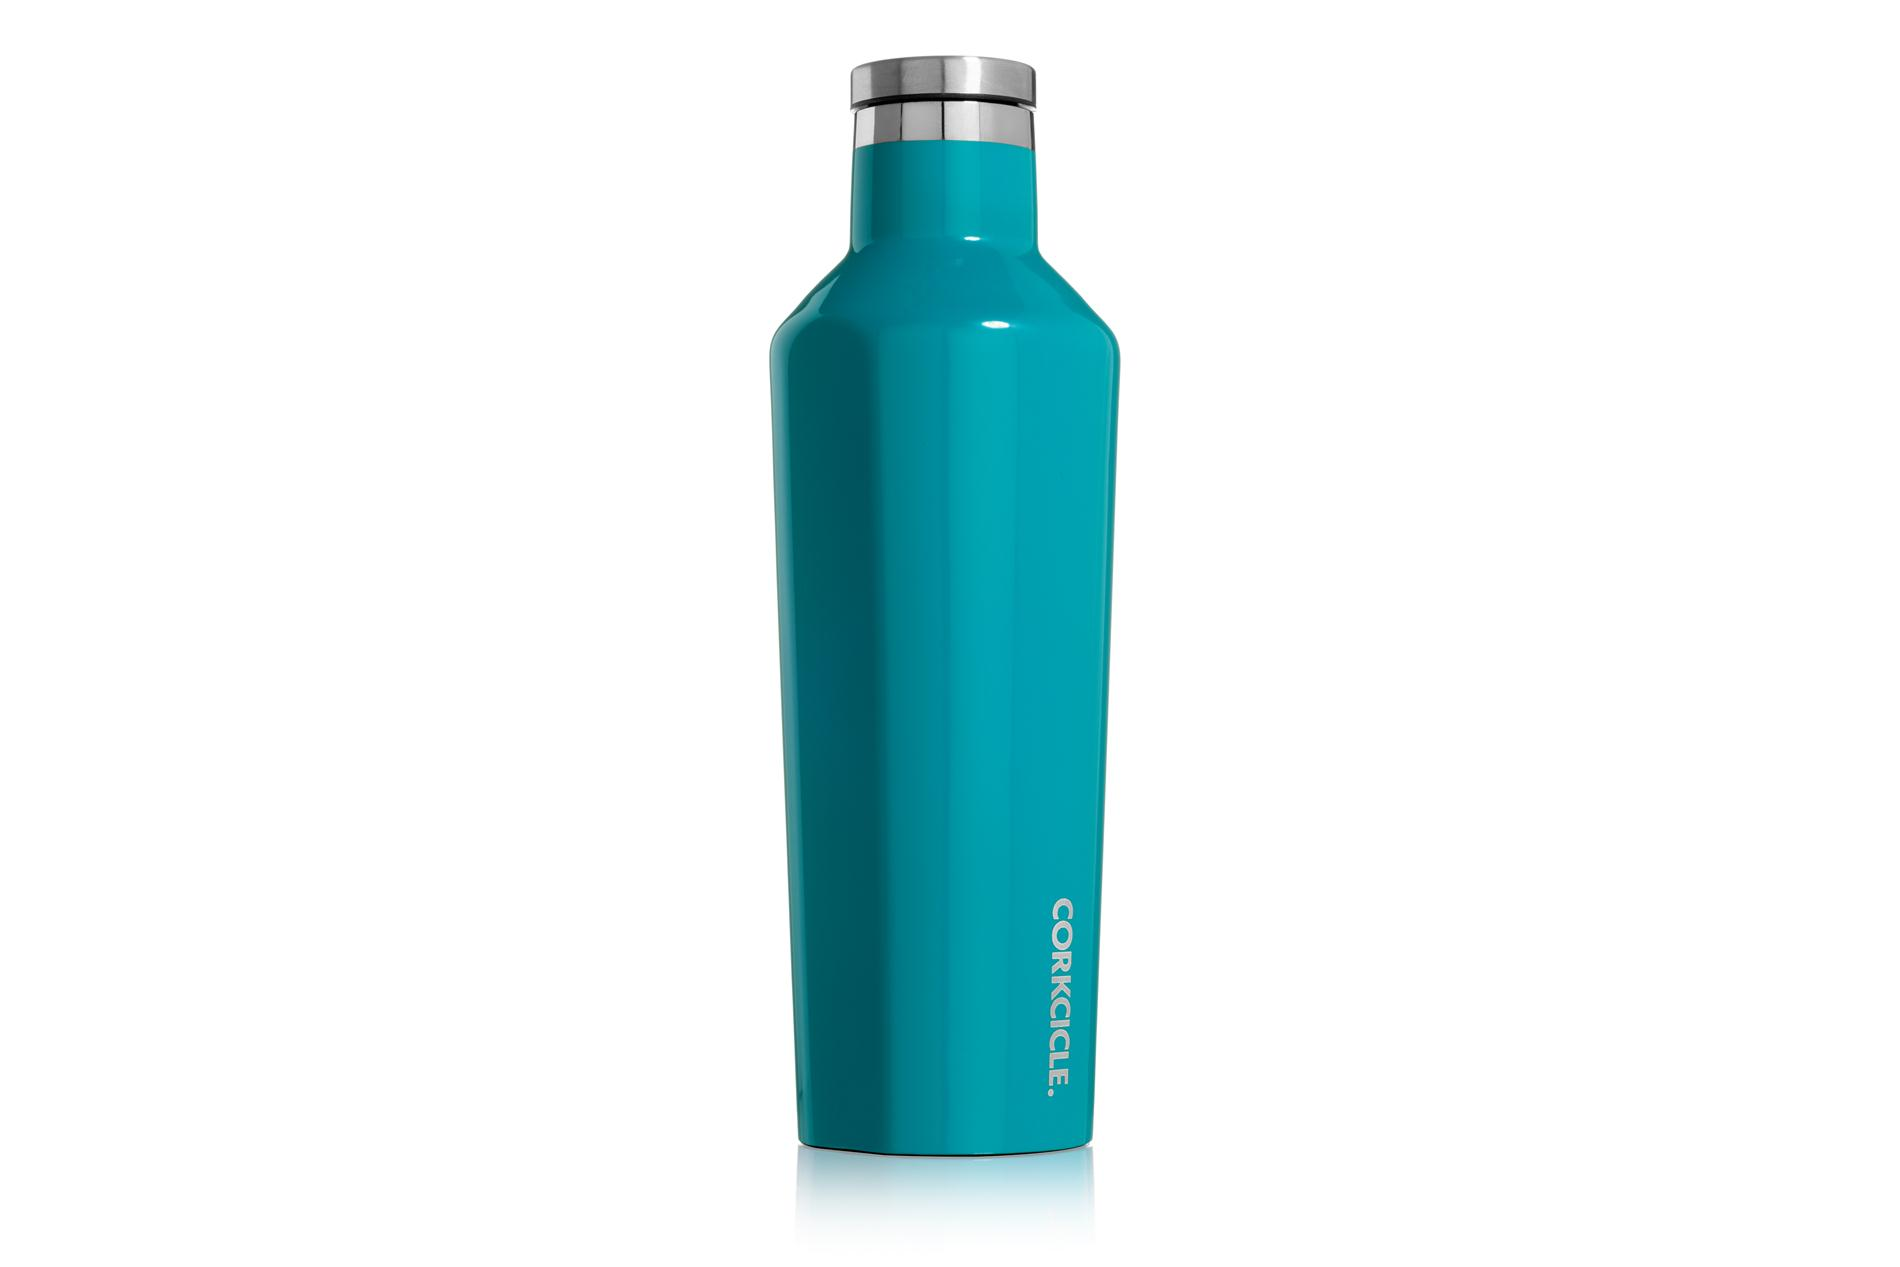 Corkcicle Trinkflasche / Thermo Isolierflasche Biscay Bay 475 ml Gloss